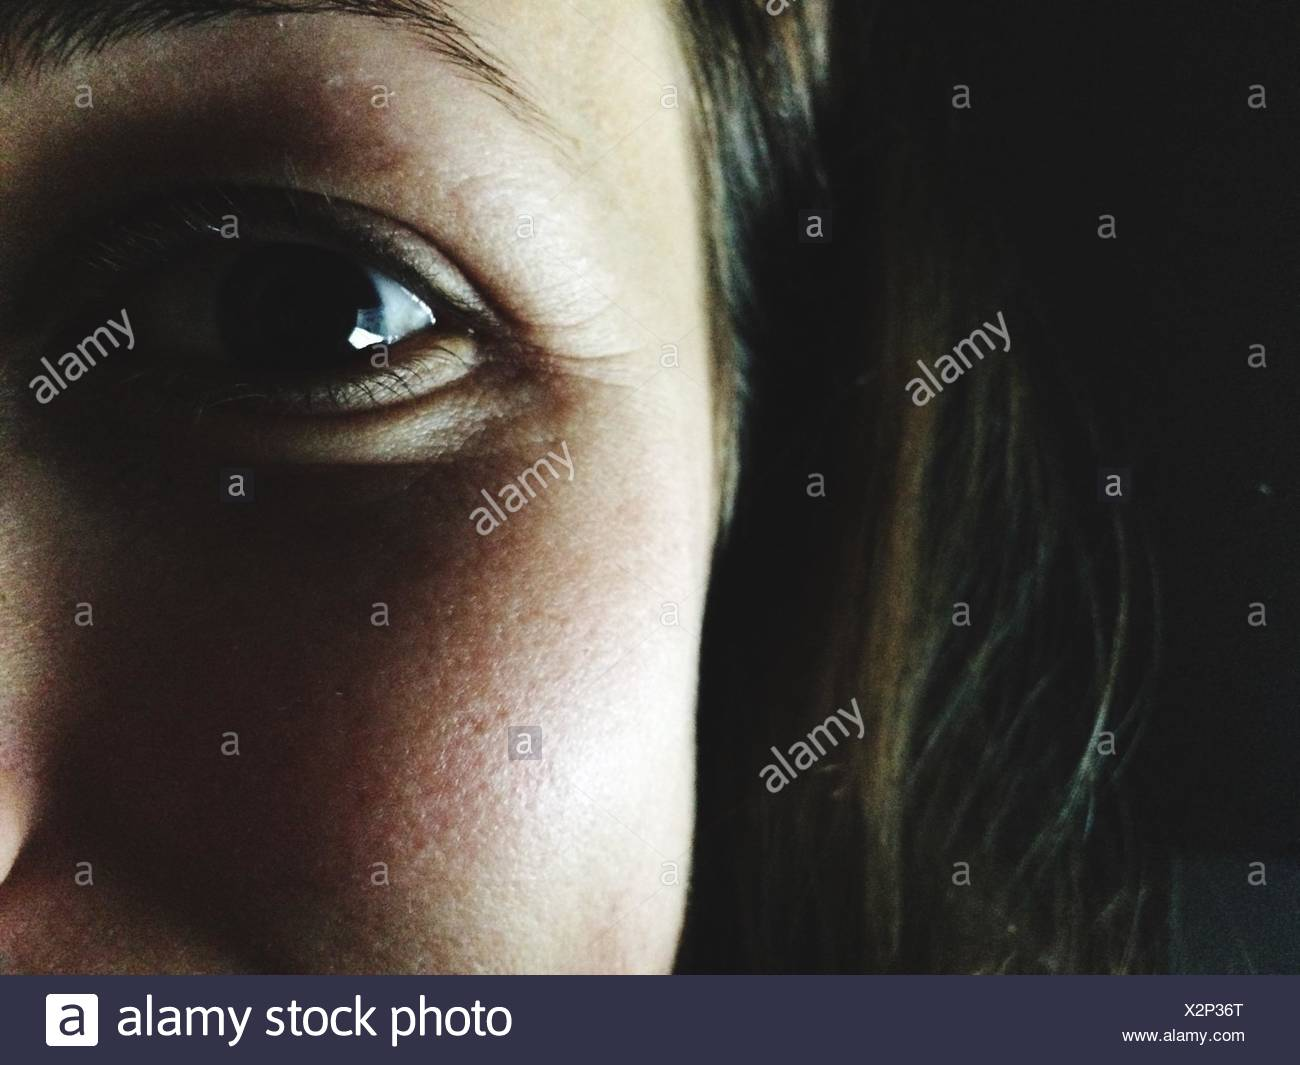 Cropped Image Of Woman - Stock Image